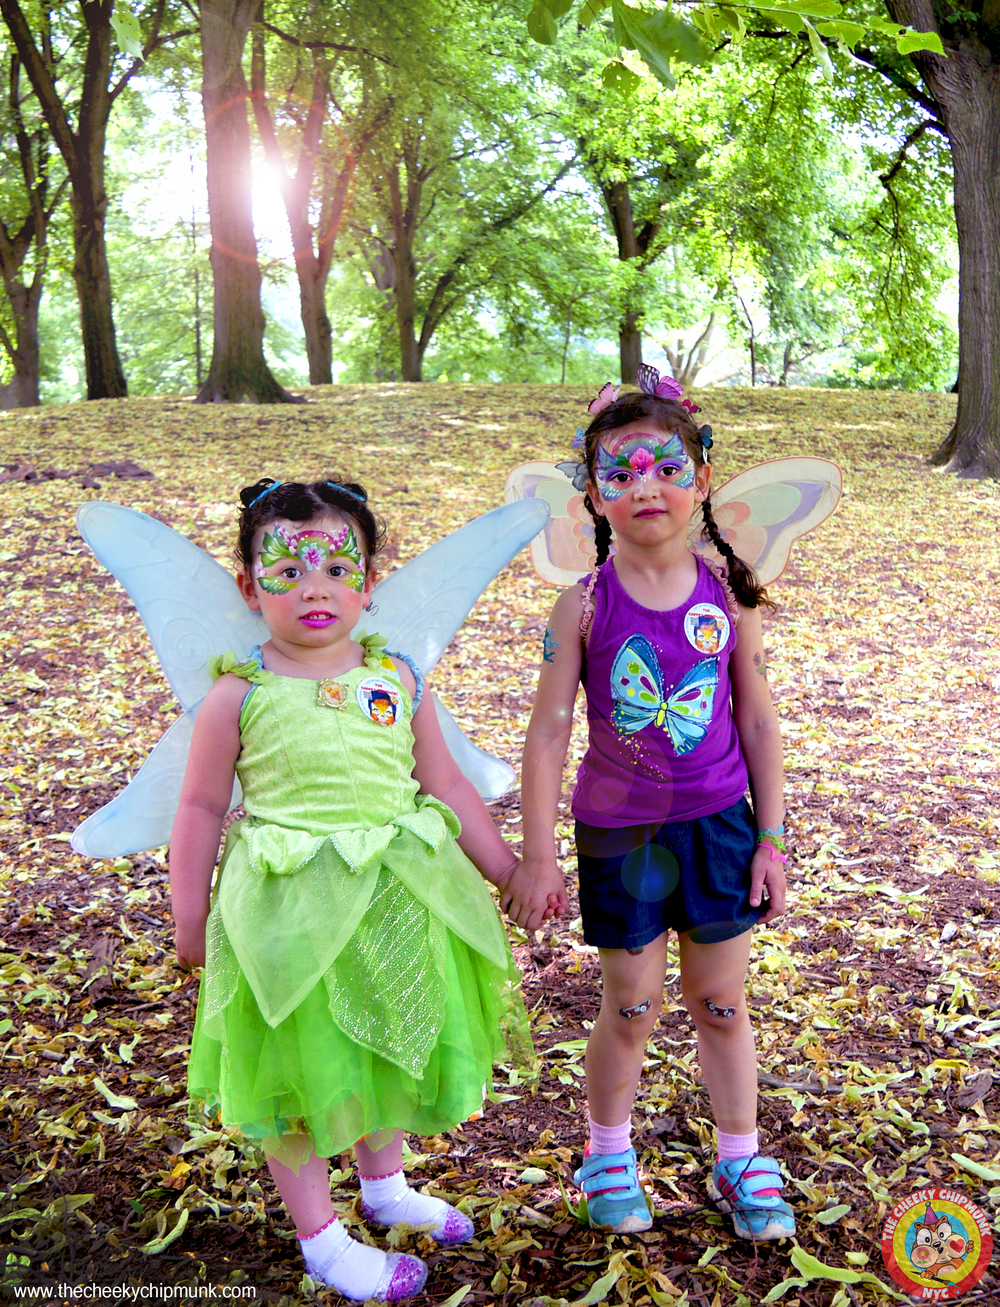 silvias birthda party 2016 silvia and baby green fairy in woods.jpg